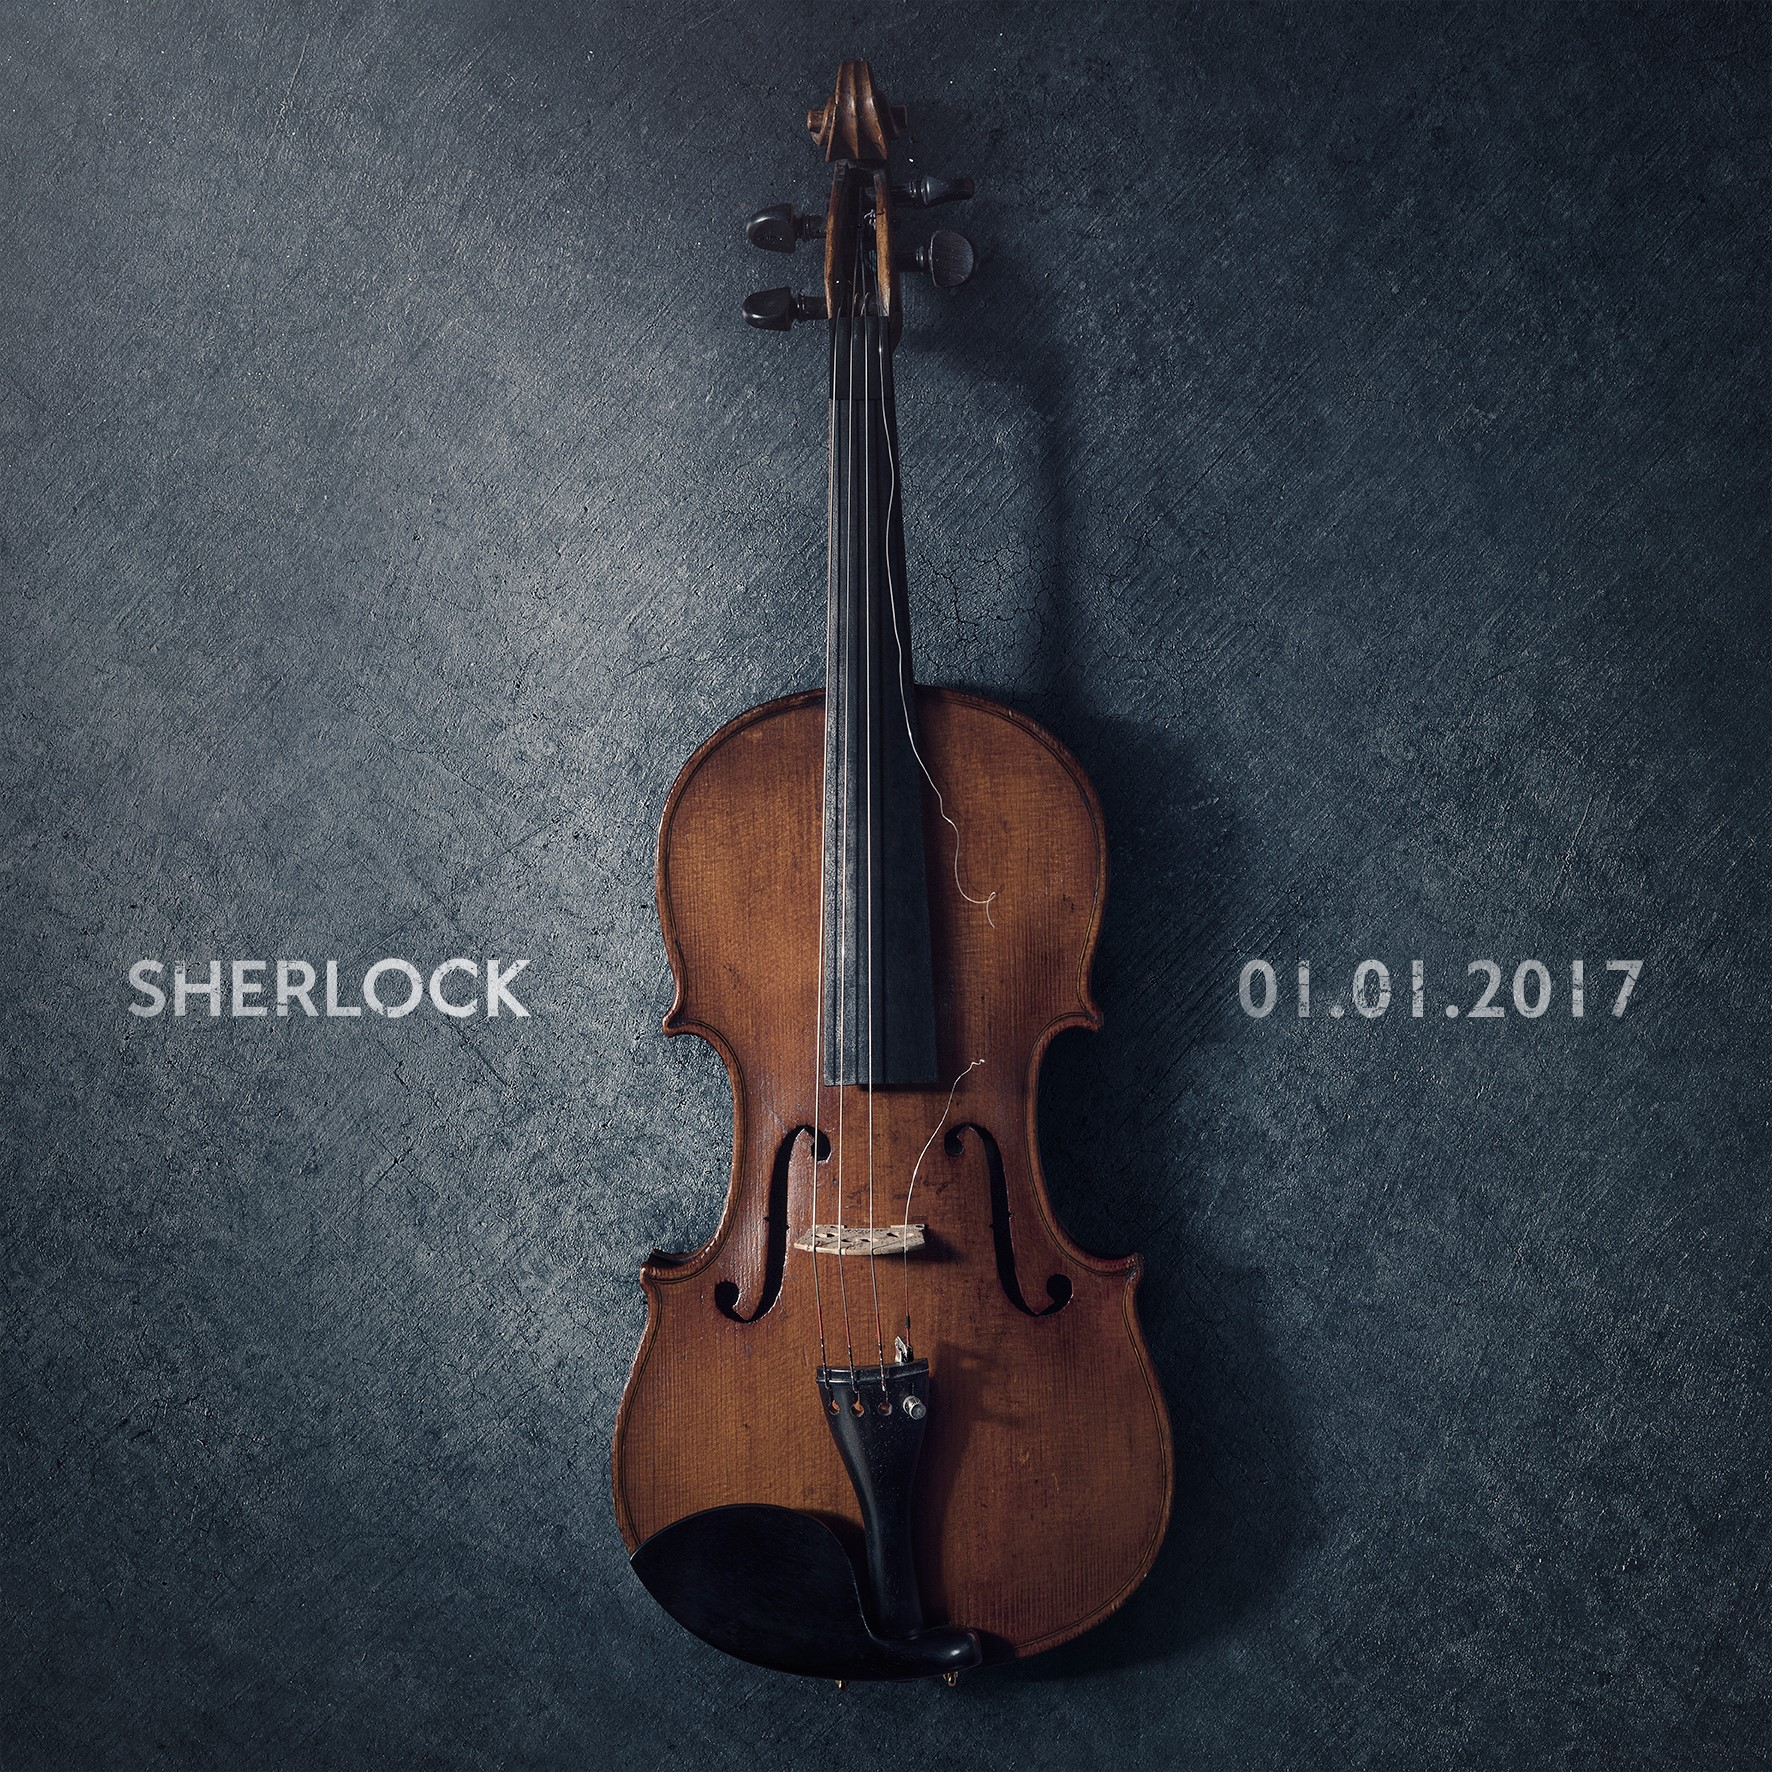 Sherlock Returns on January 1, 2017